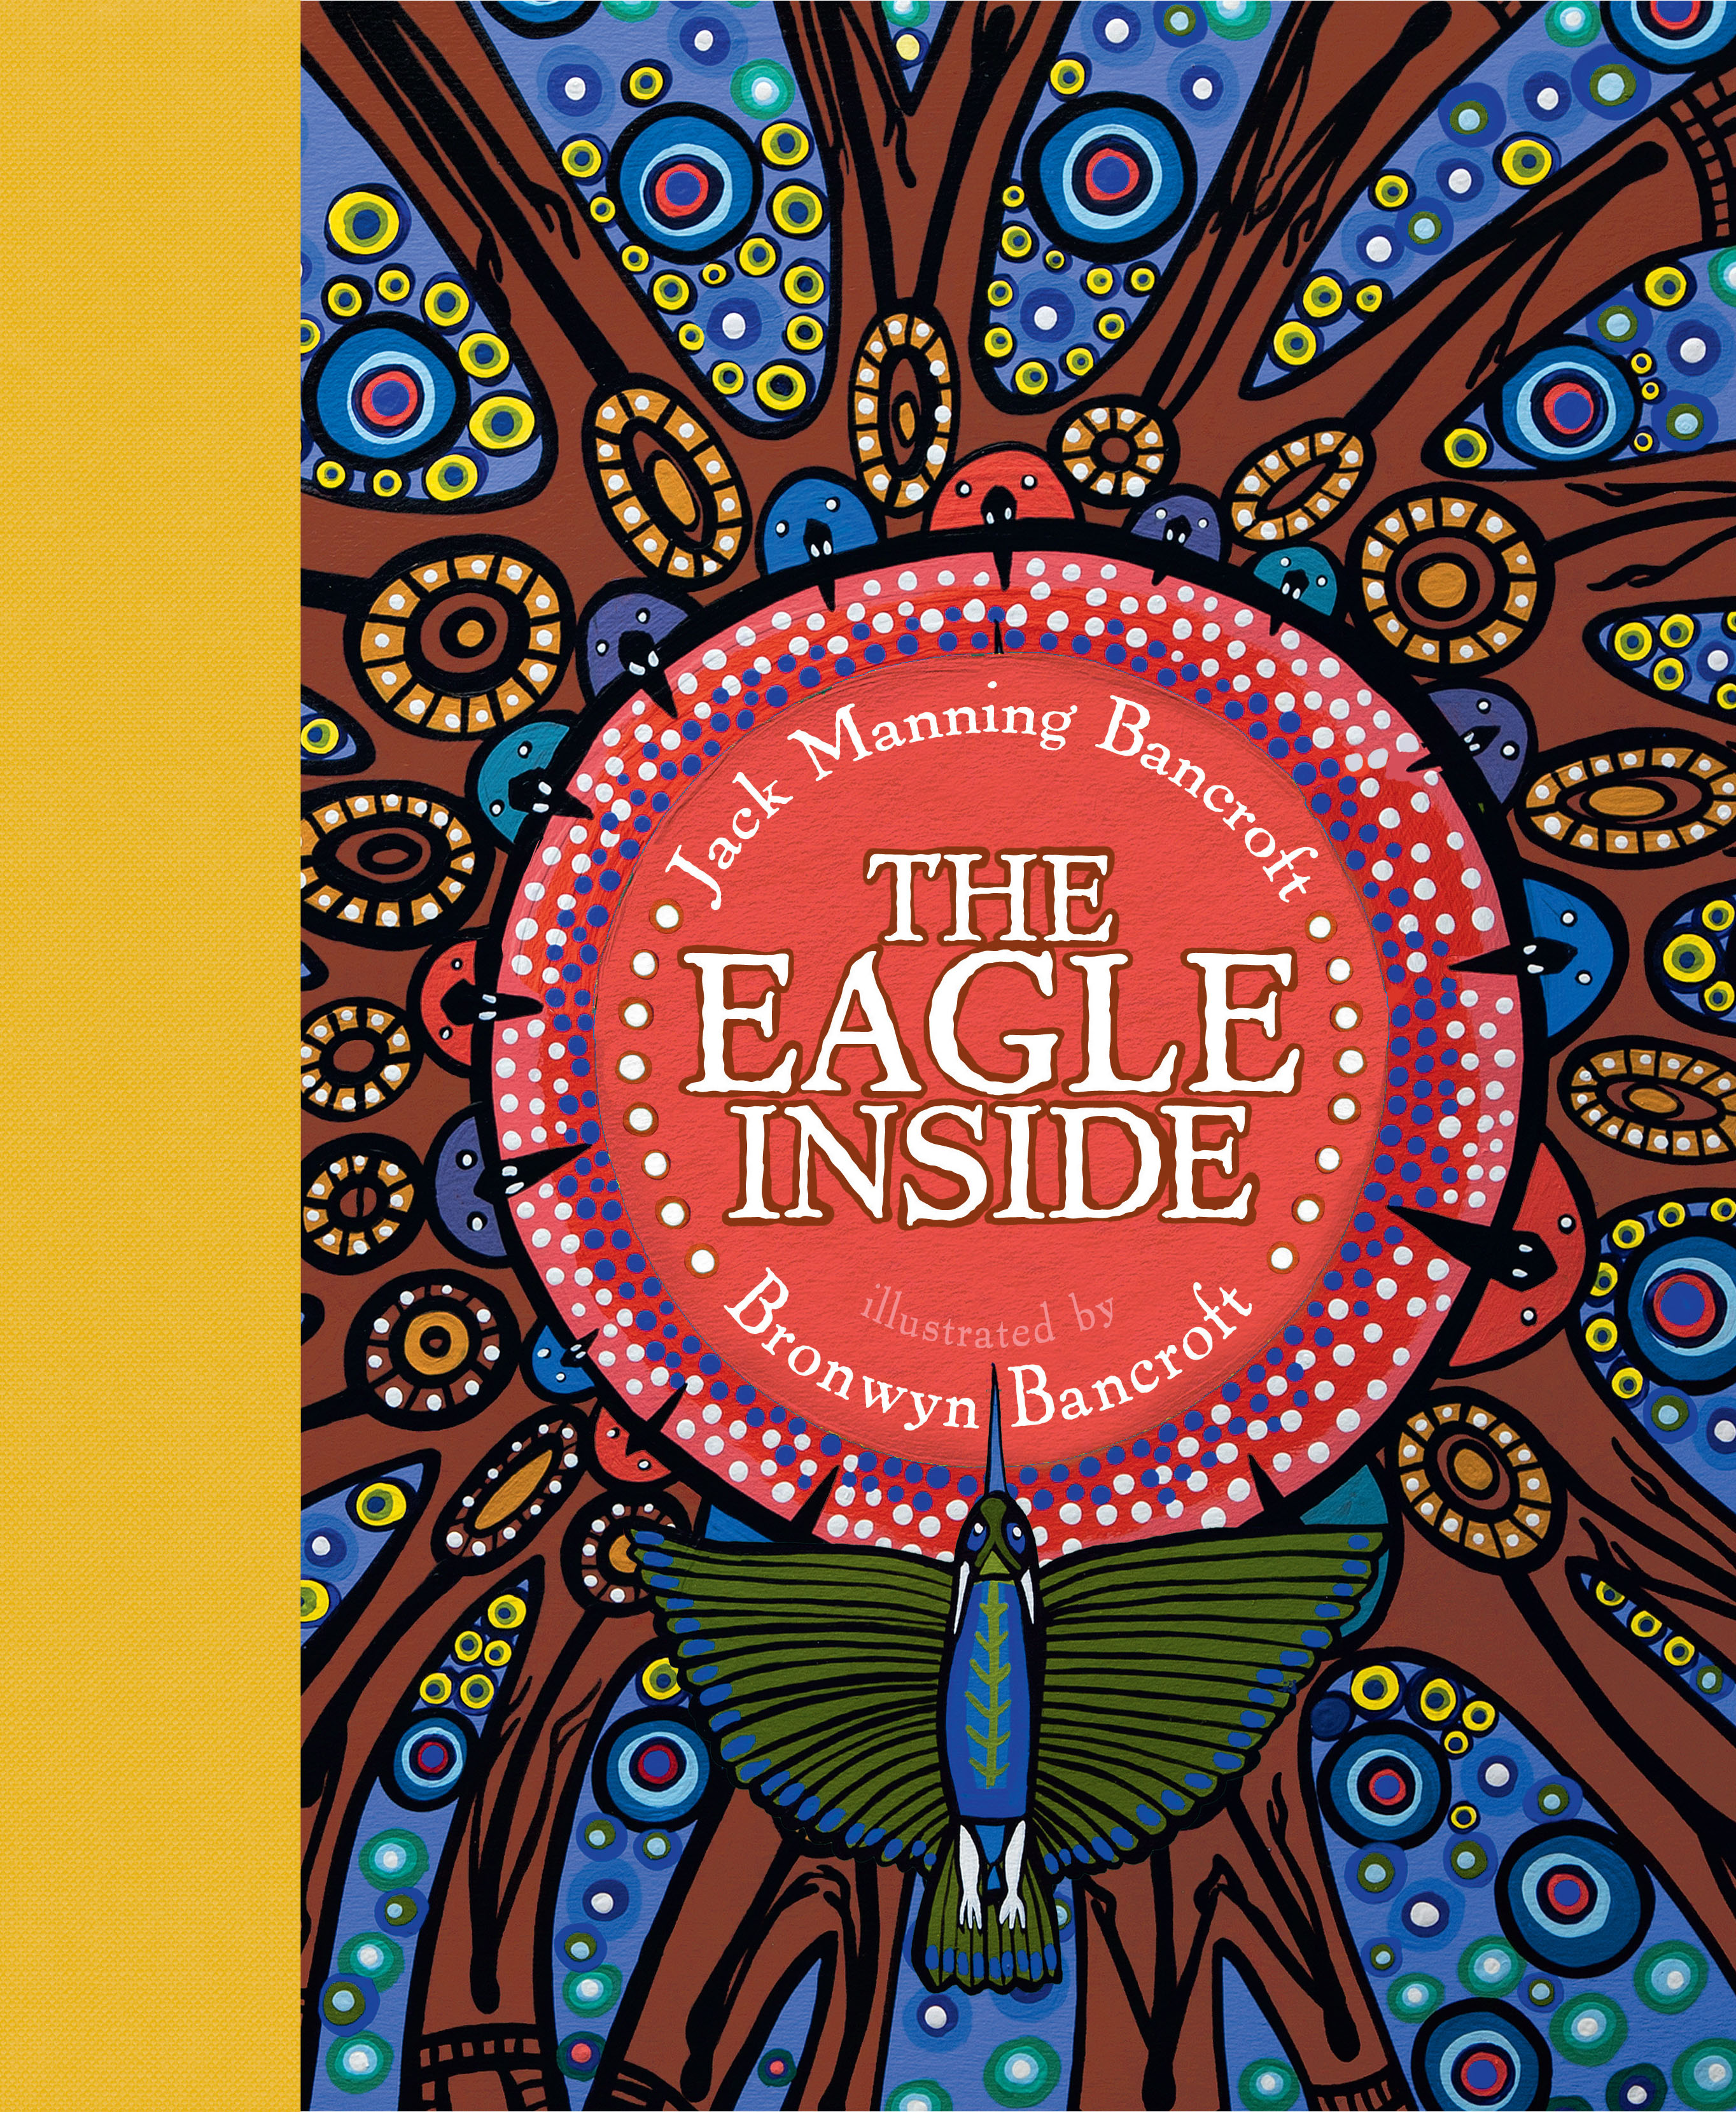 The Eagle Inside